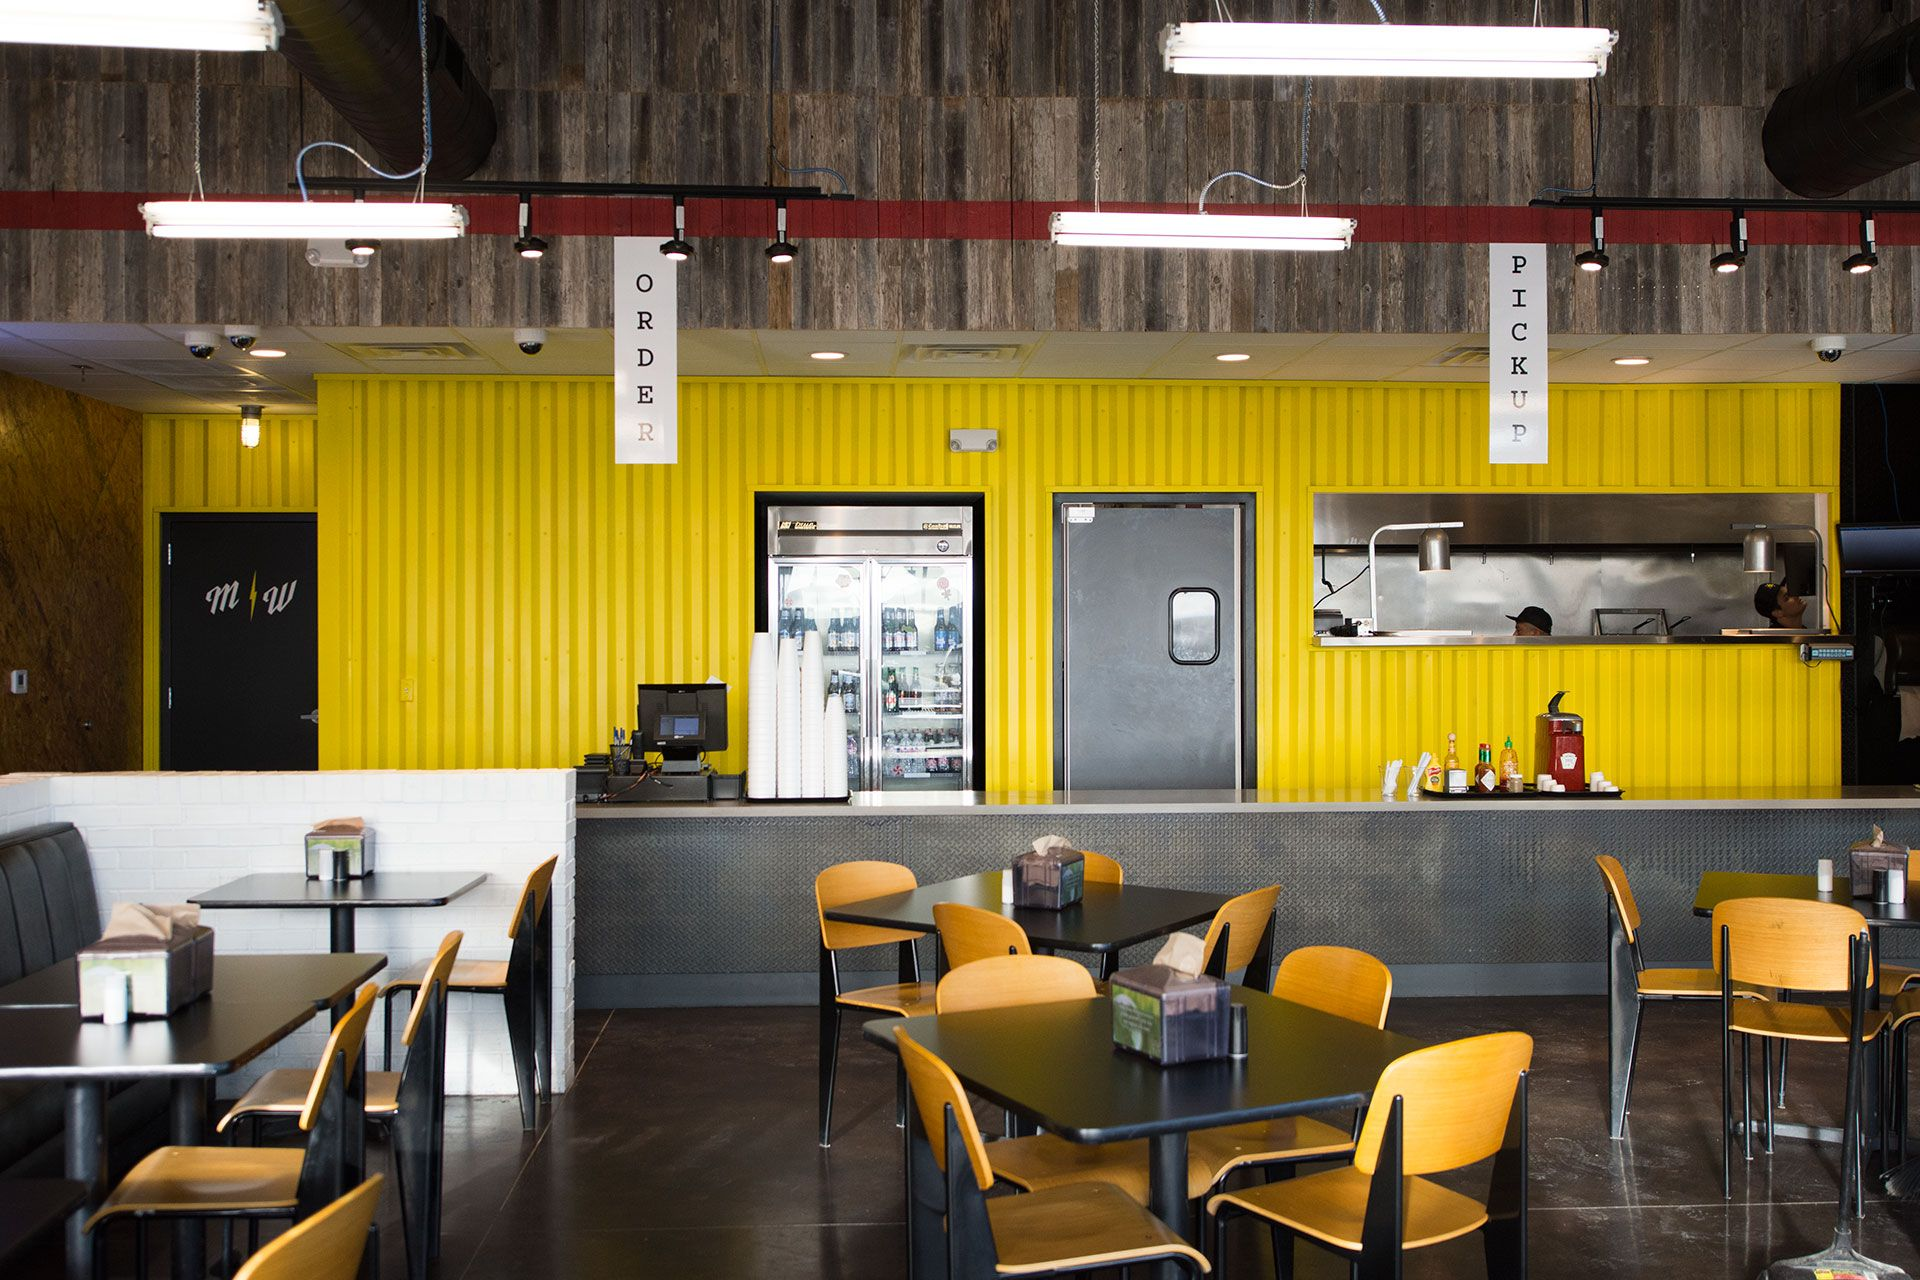 Flash burger fast casual restaurant branding interior